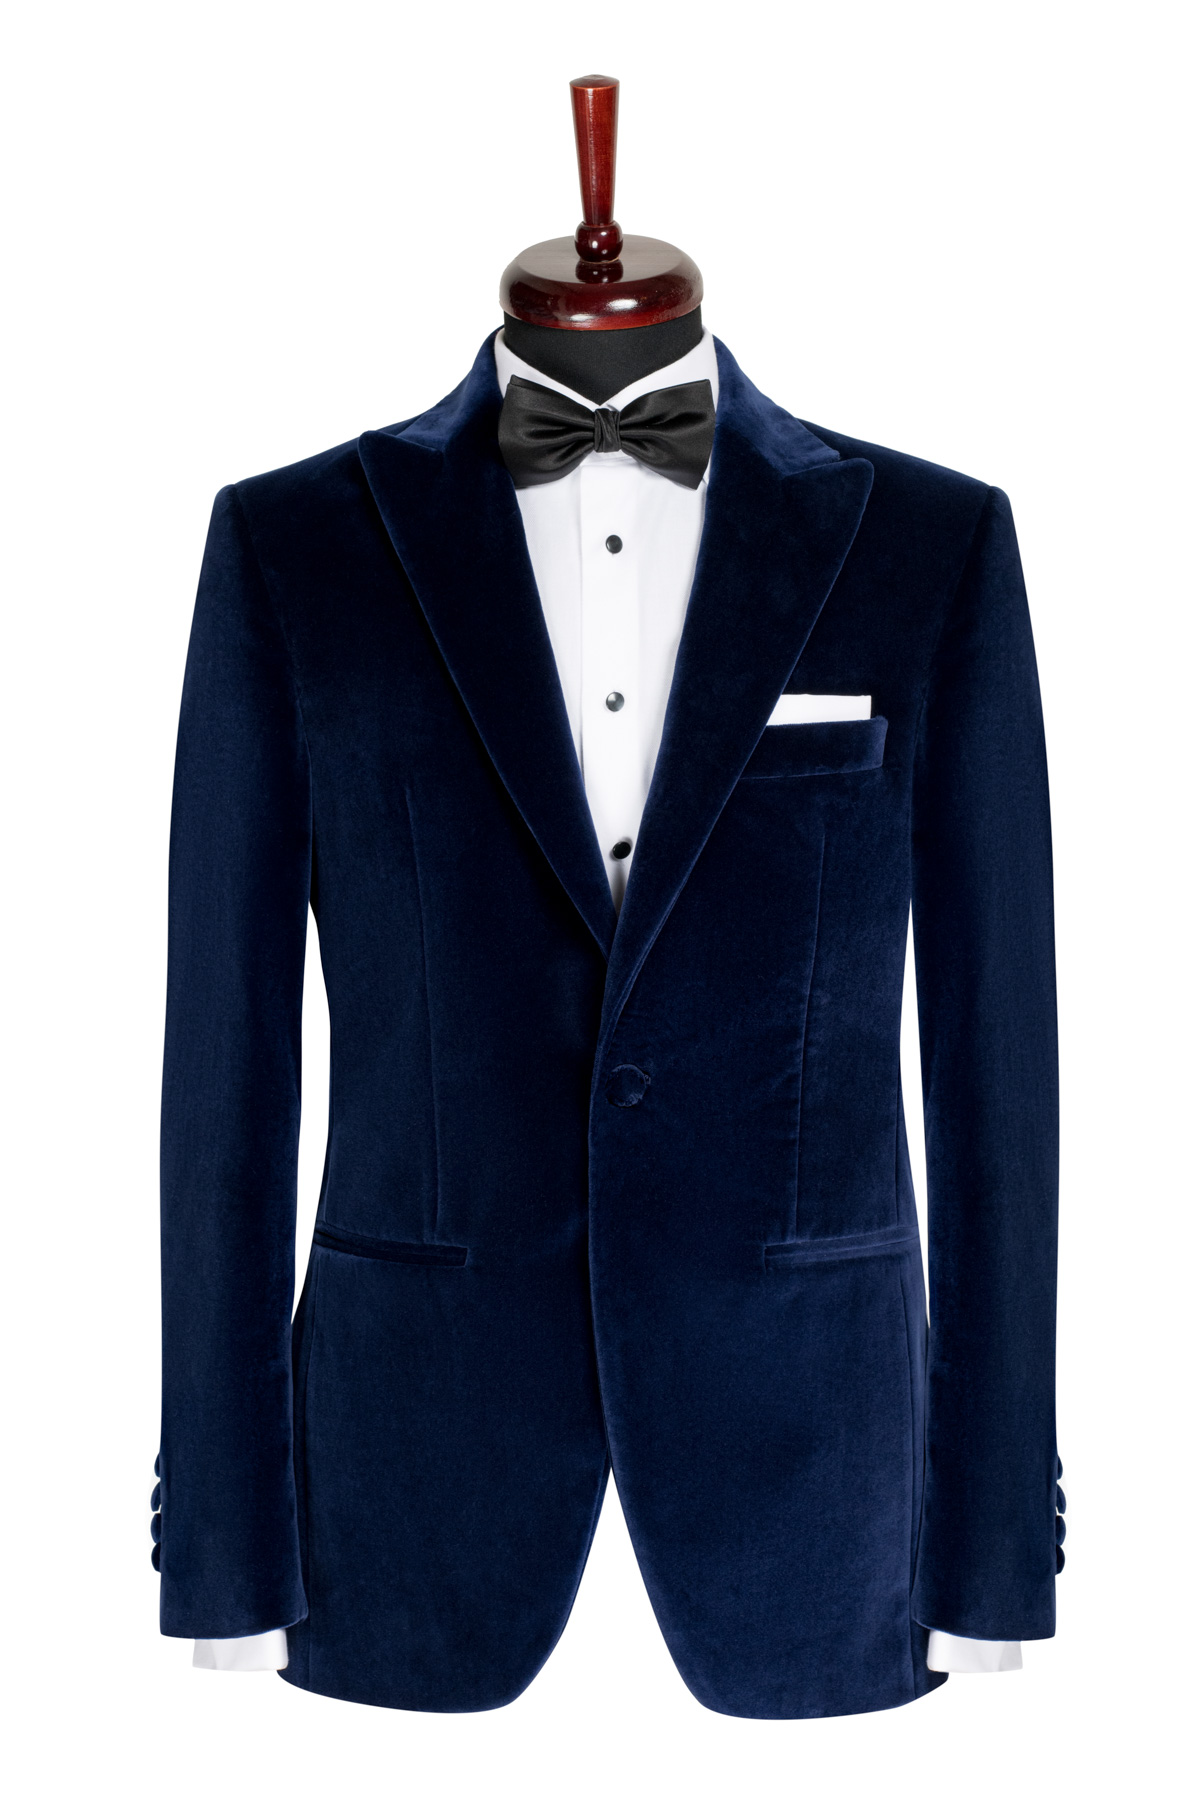 Sacou Smoking catifea Slim Fit Gentlemen`s Corner - Negru - NOU!